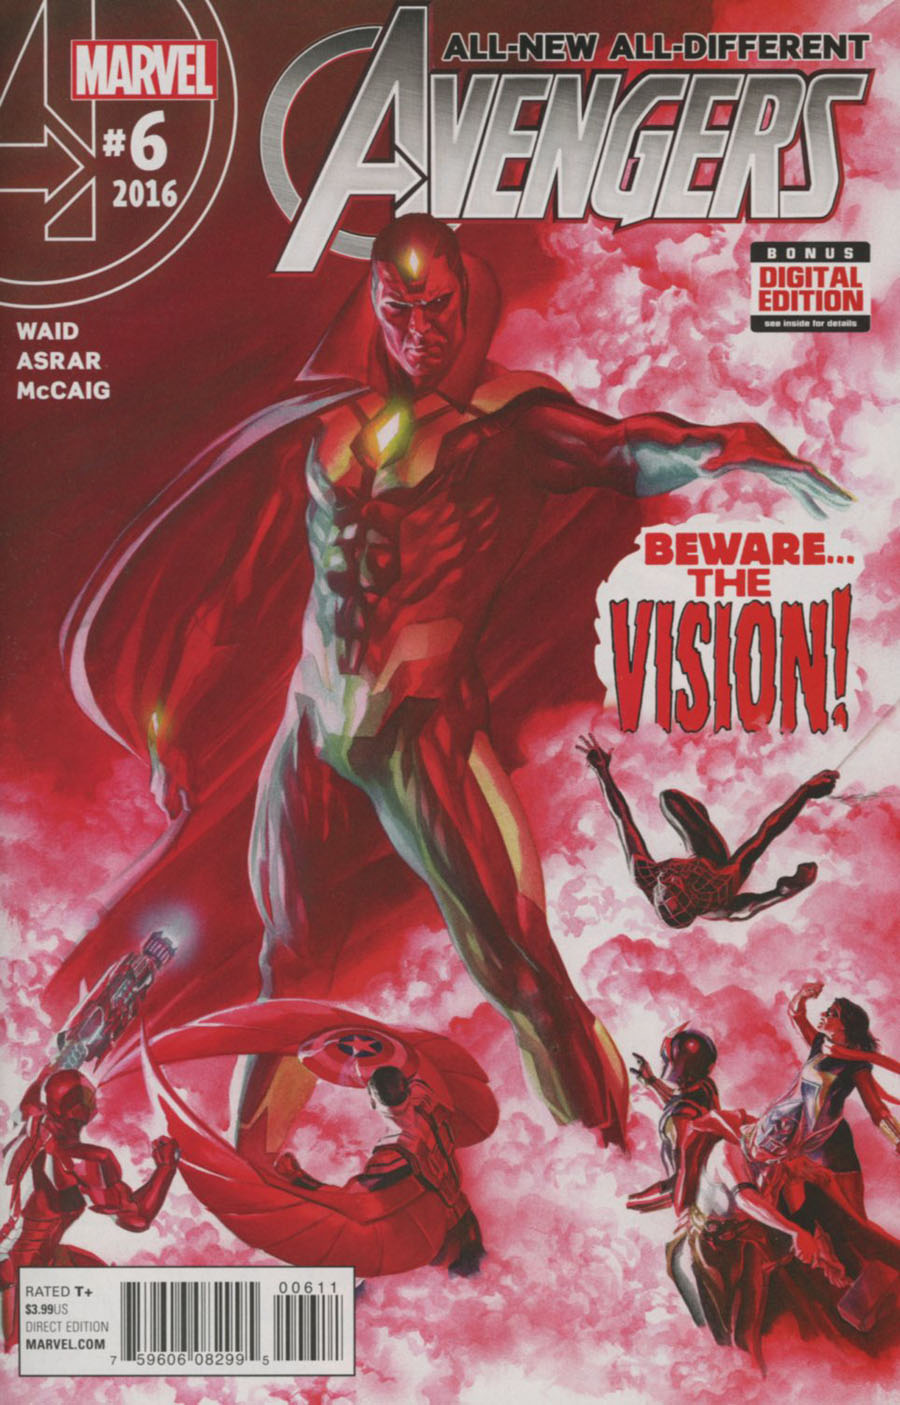 All-New All-Different Avengers #6 Cover A 1st Ptg